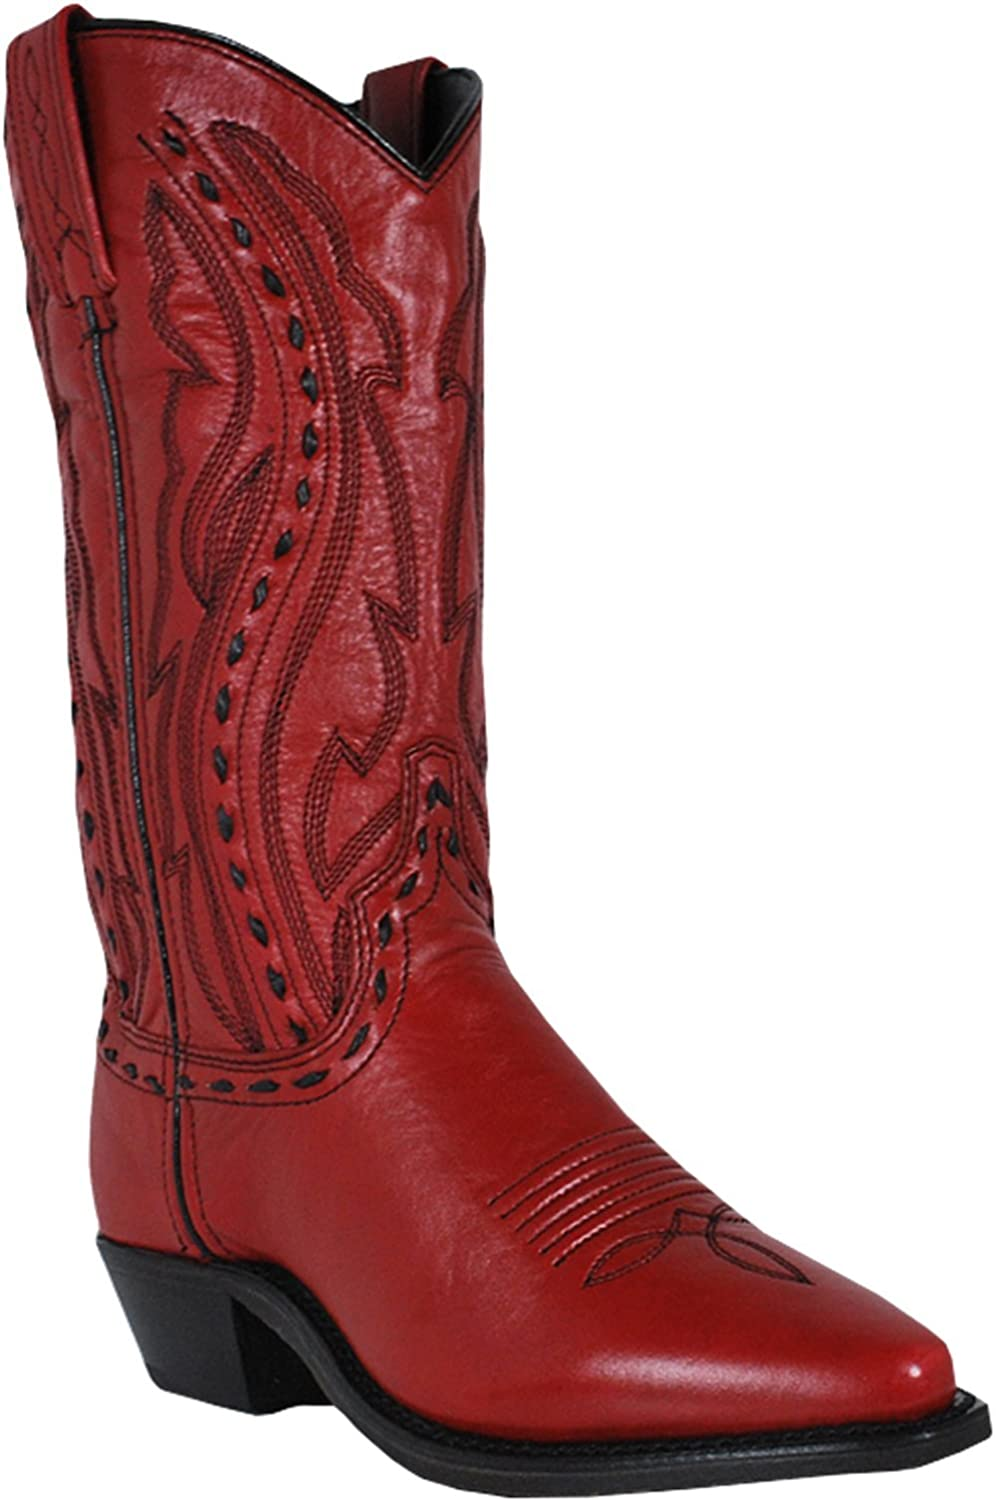 Abilene Women's Whipstitched Cowgirl Boot - 9002 Red